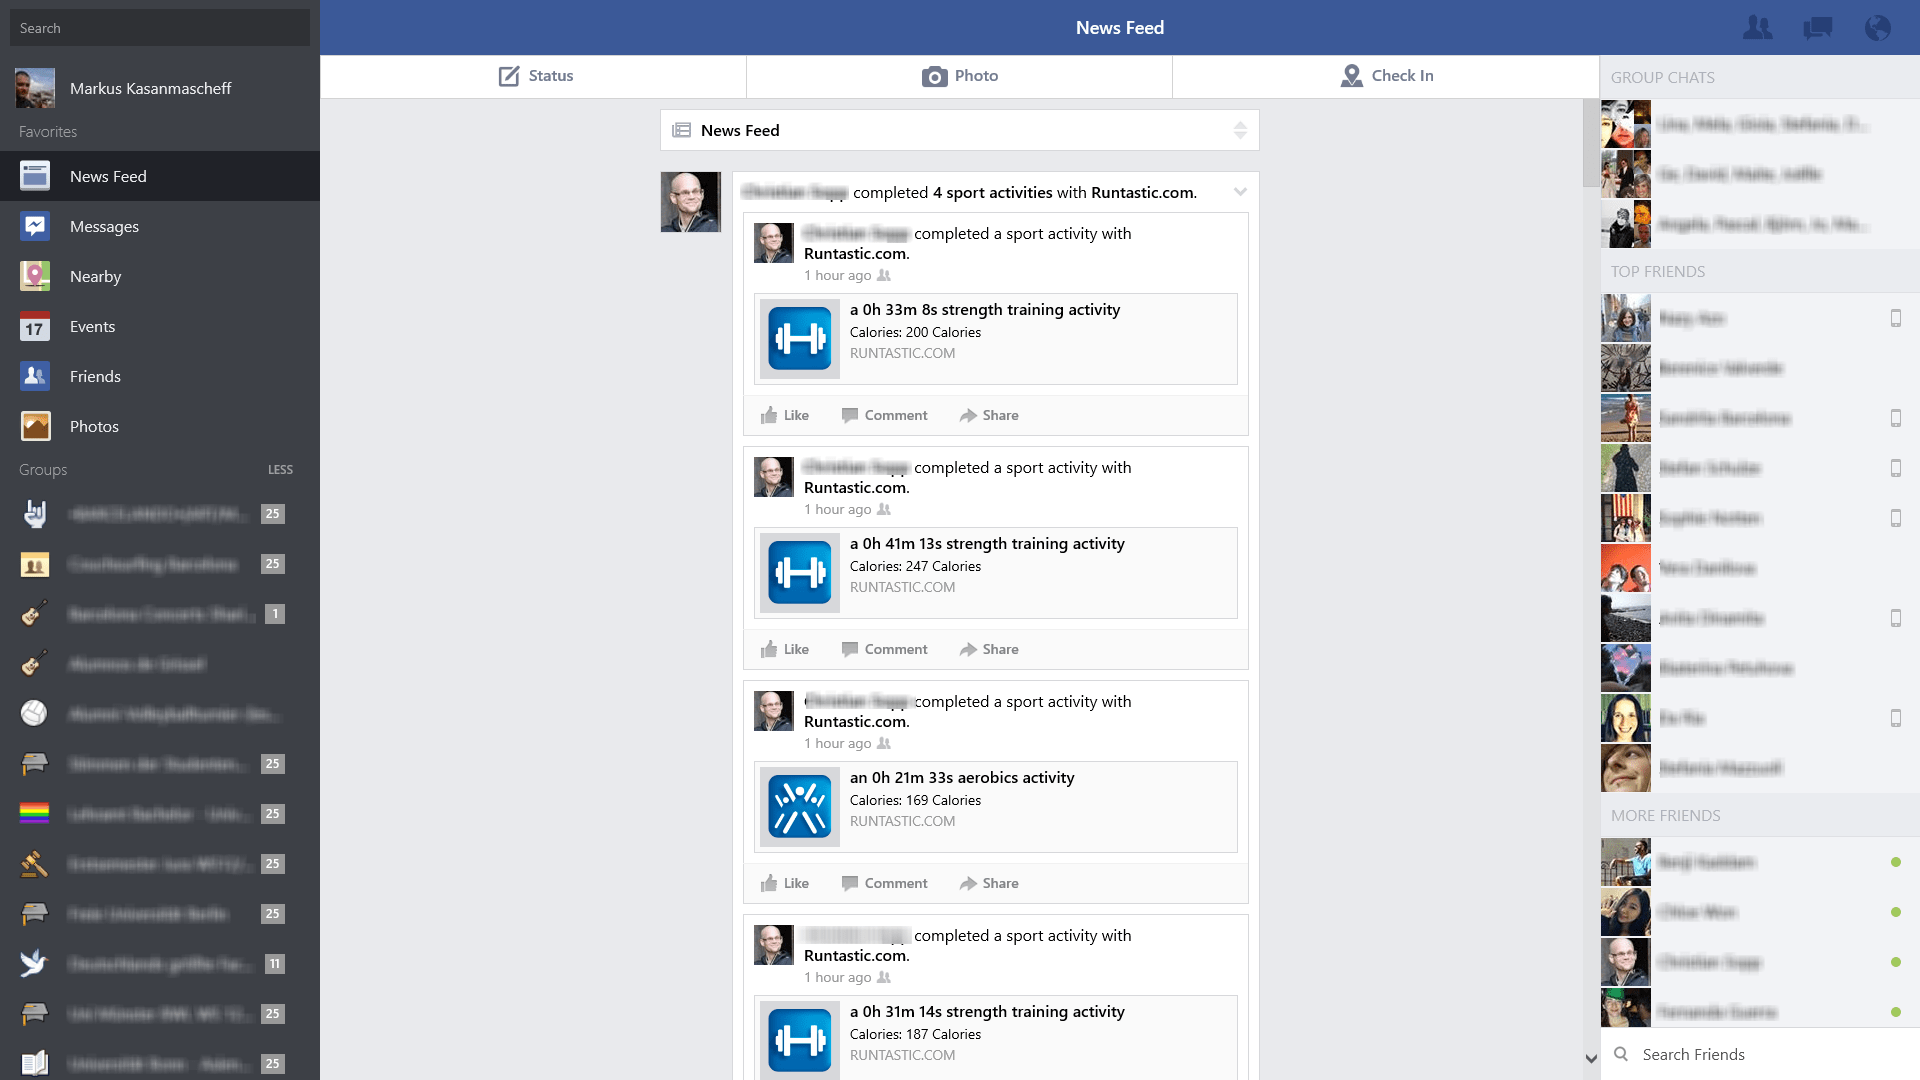 https://www.howtogeek.com/345963/how-to-download-your-photos-from-facebook/